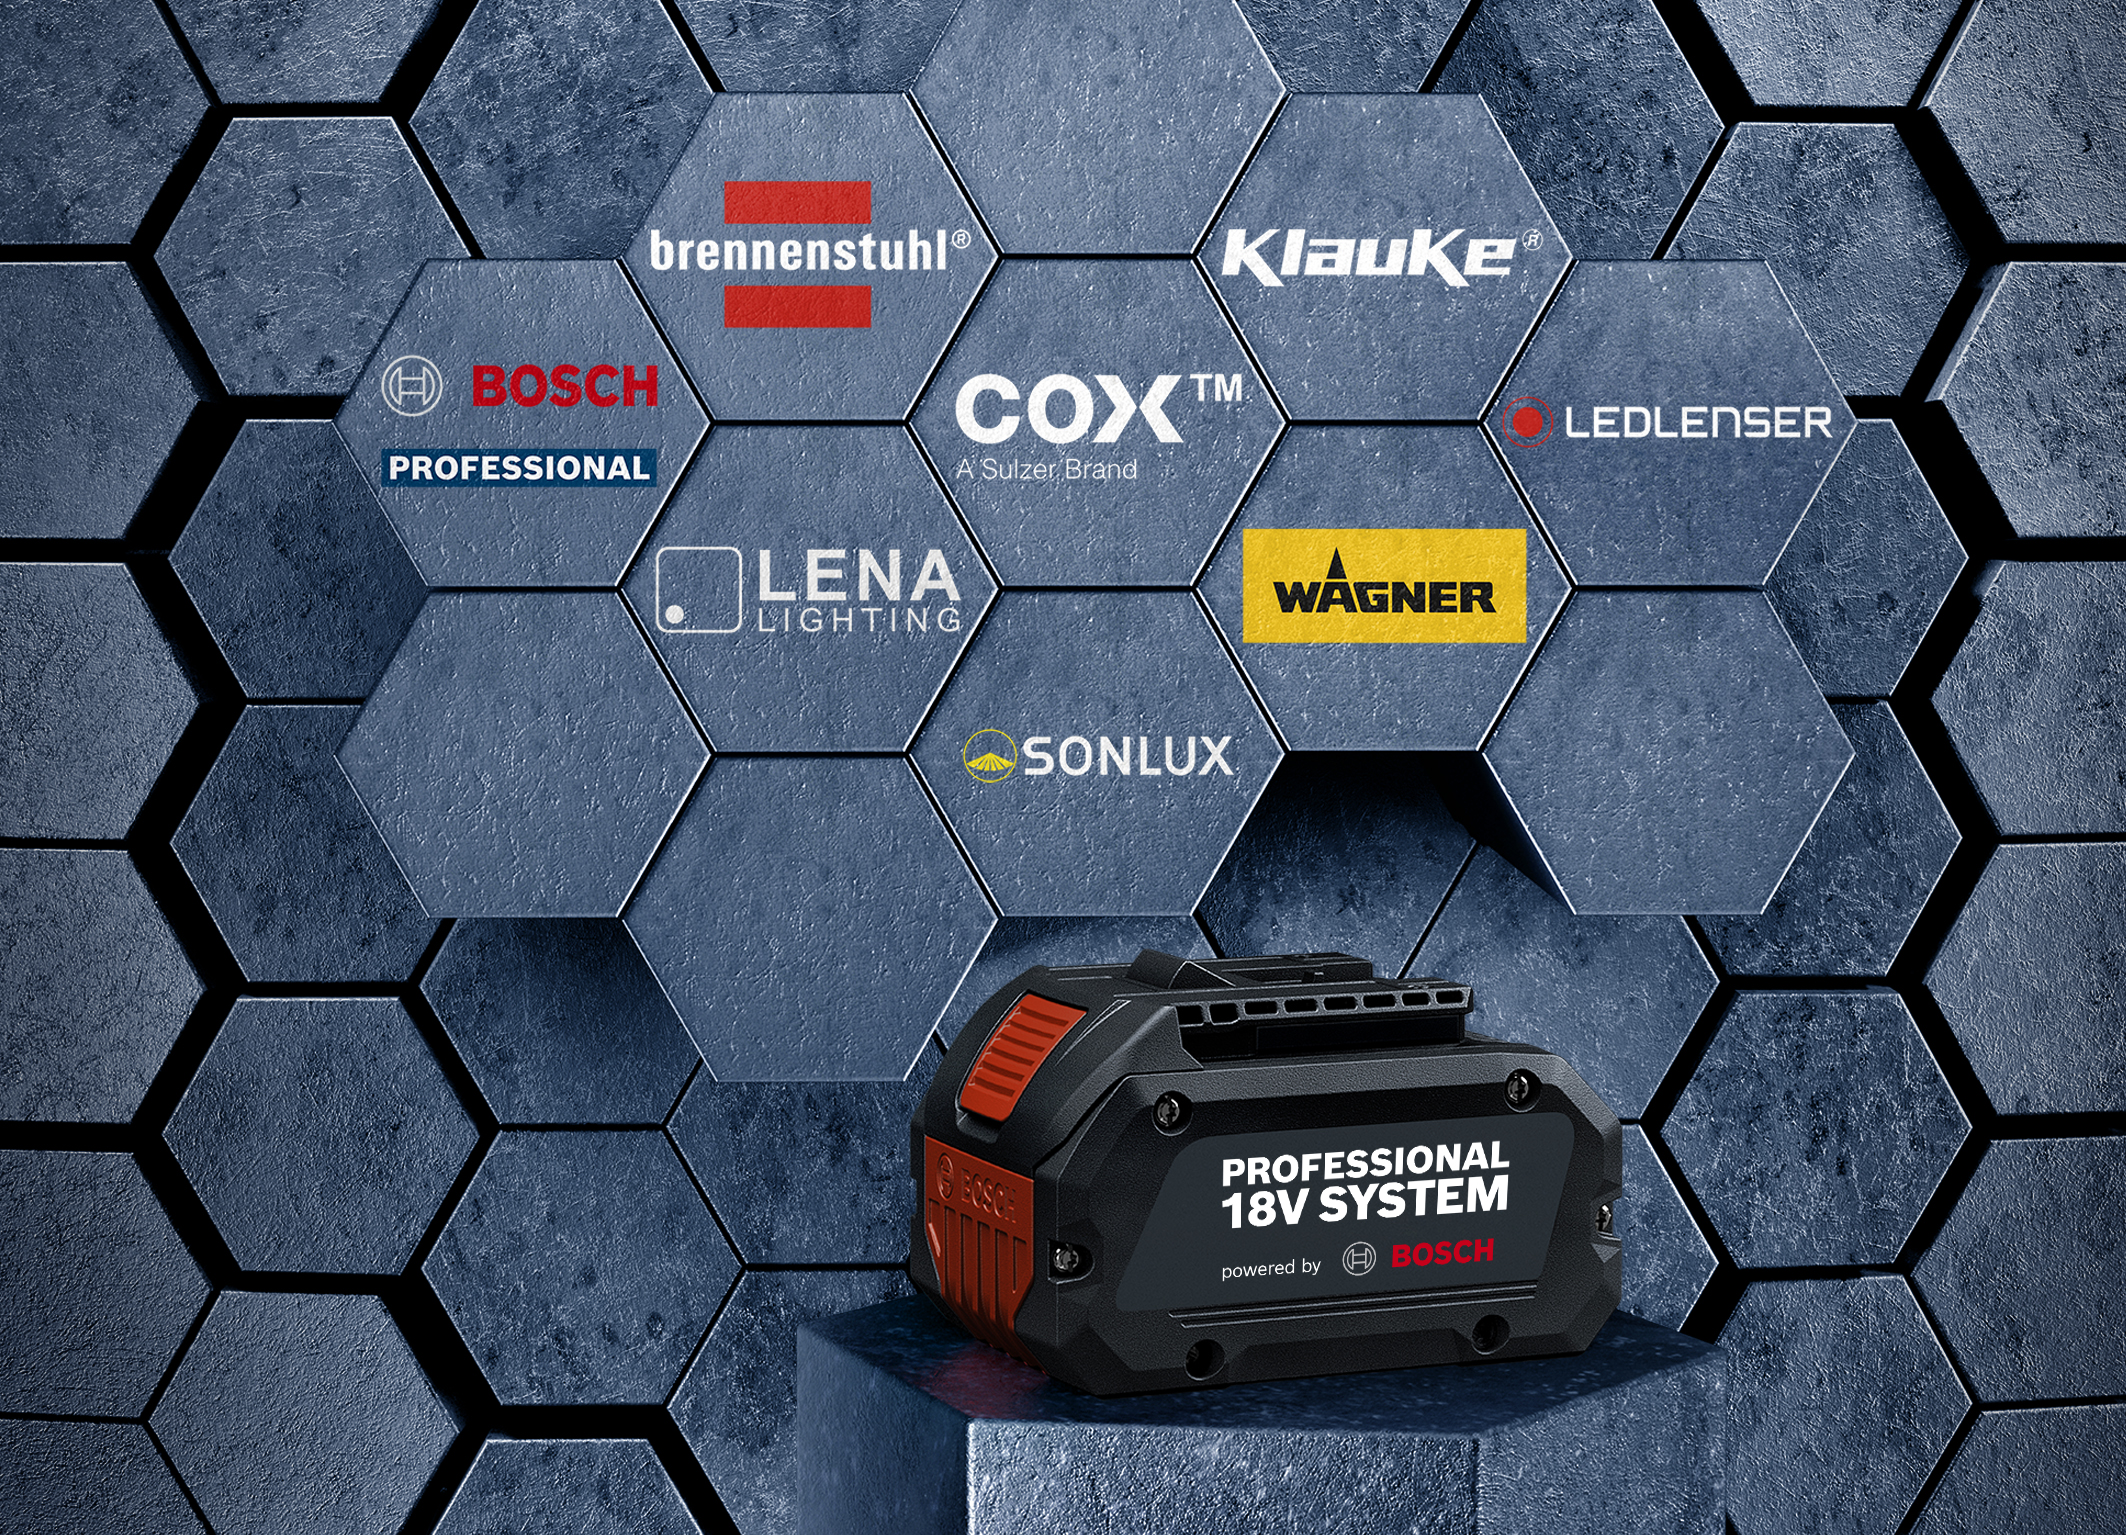 Efficiency boost for professional users: Bosch opens Professional 18V System for expert brands